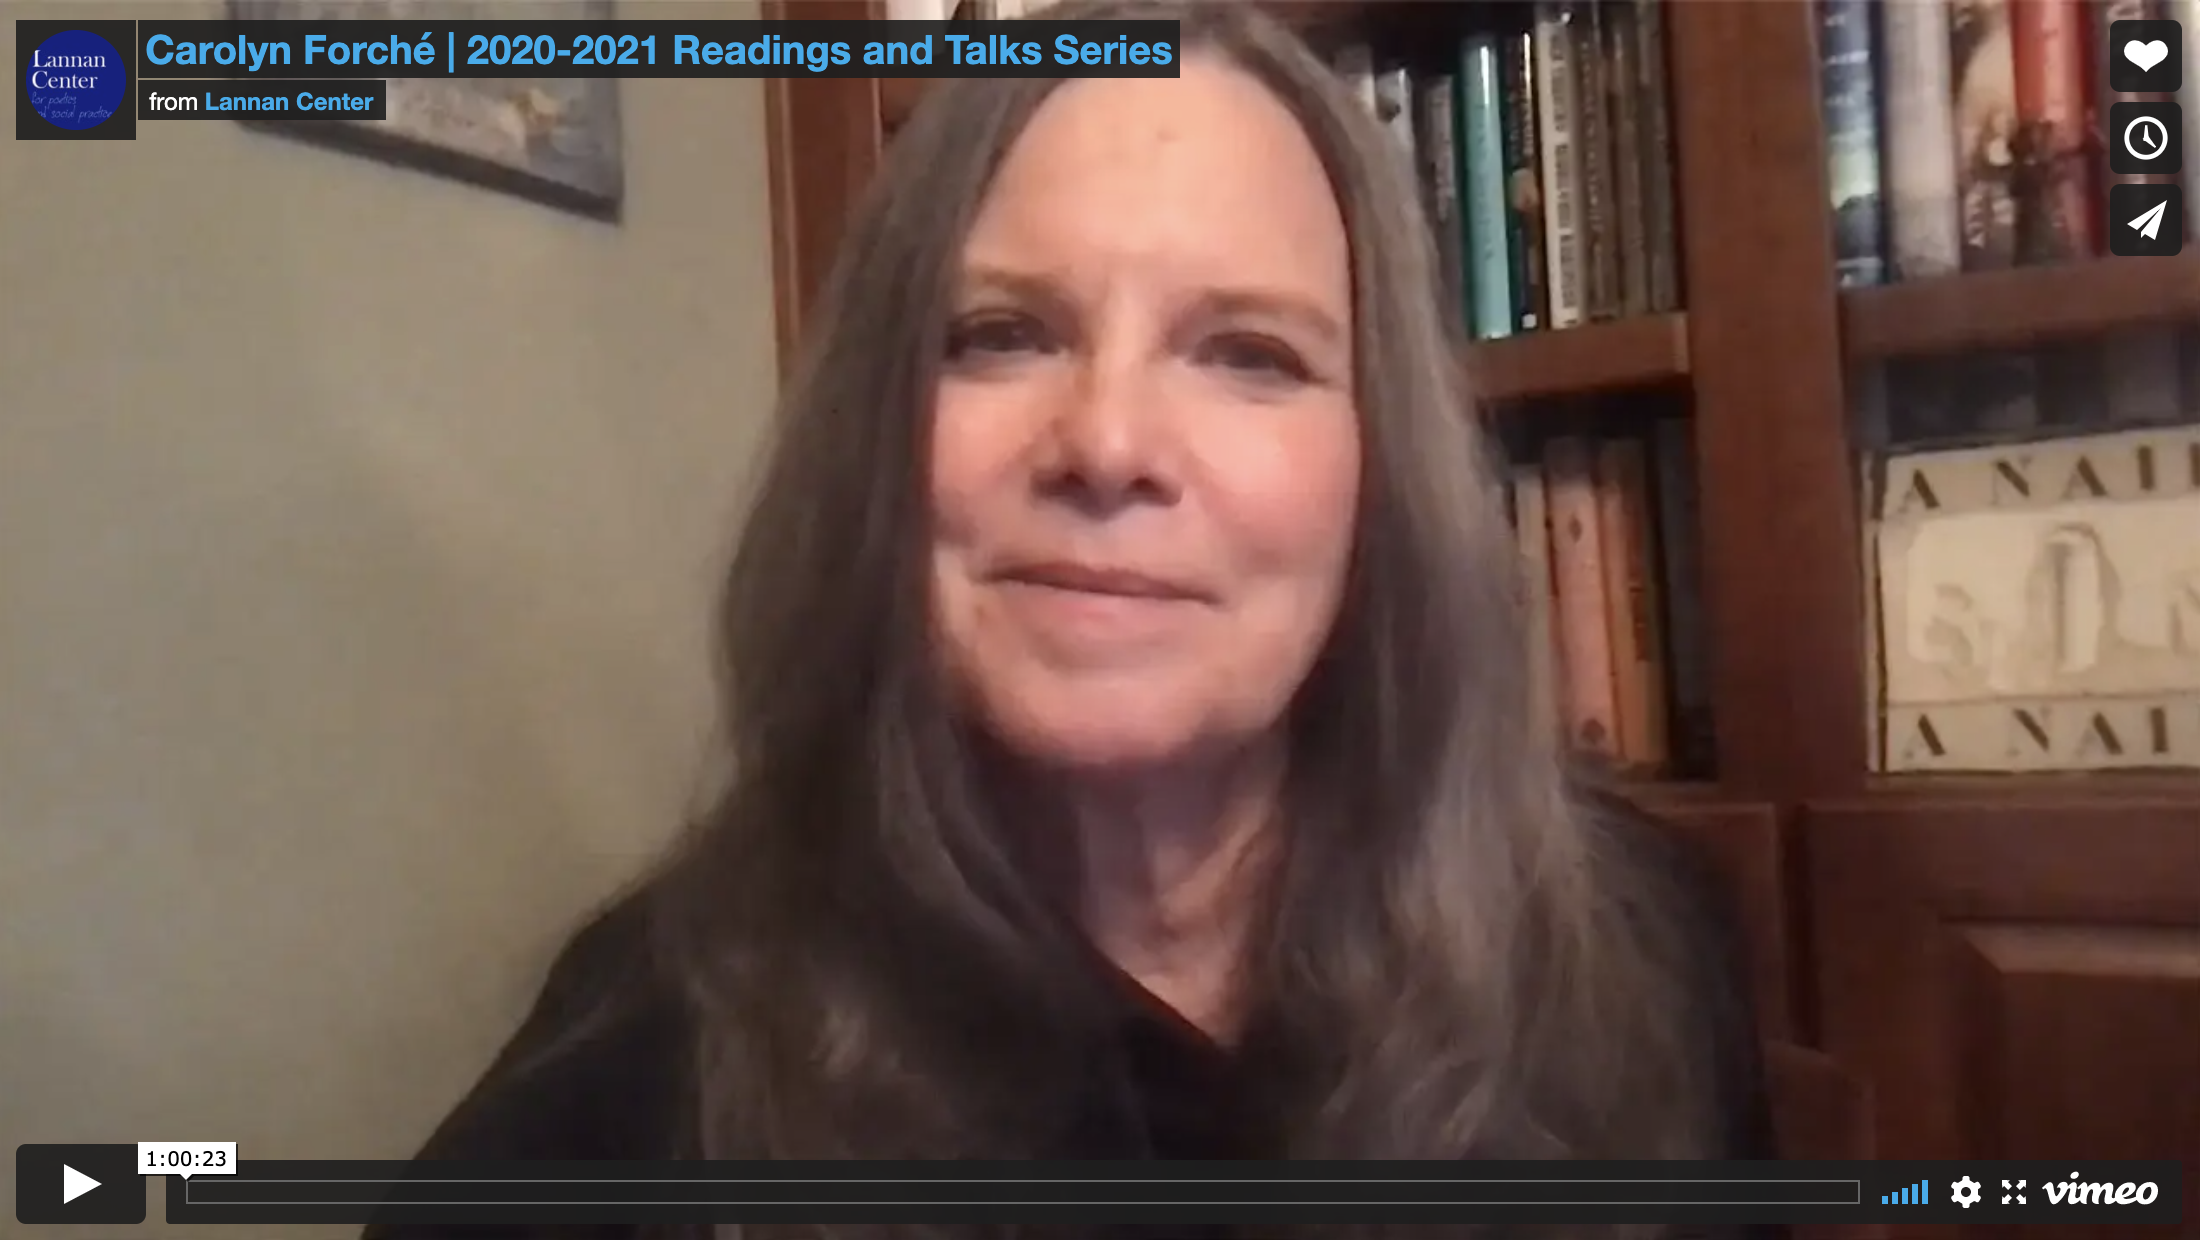 Carolyn Forché looks at camera during her virtual reading